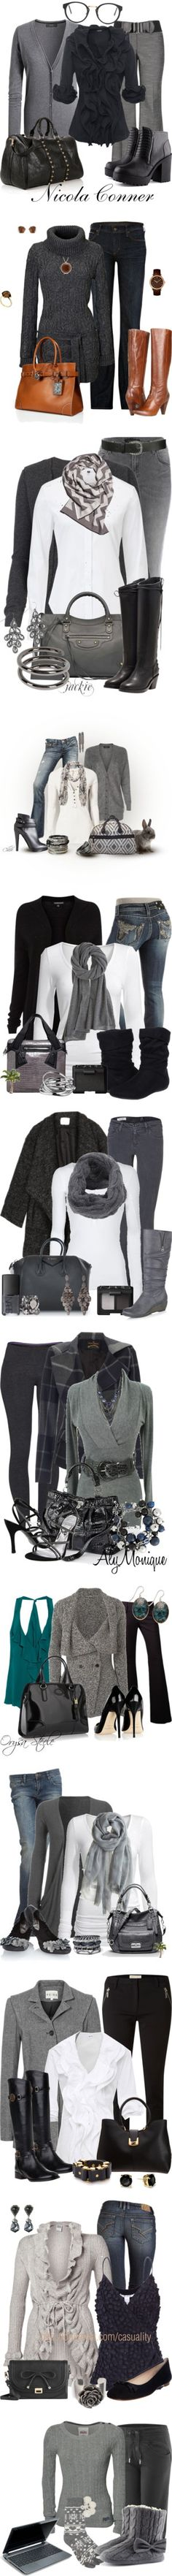 Deep Winter Soft/Soft Summer Deep by katestevens on Polyvore featuring mode, Diego Reiga, H&M, RetroSuperFuture, Citizens of Humanity, Frye, Ralph Lauren Collection, Baccarat, Roberto Marroni and 88 RUE DU RHONE